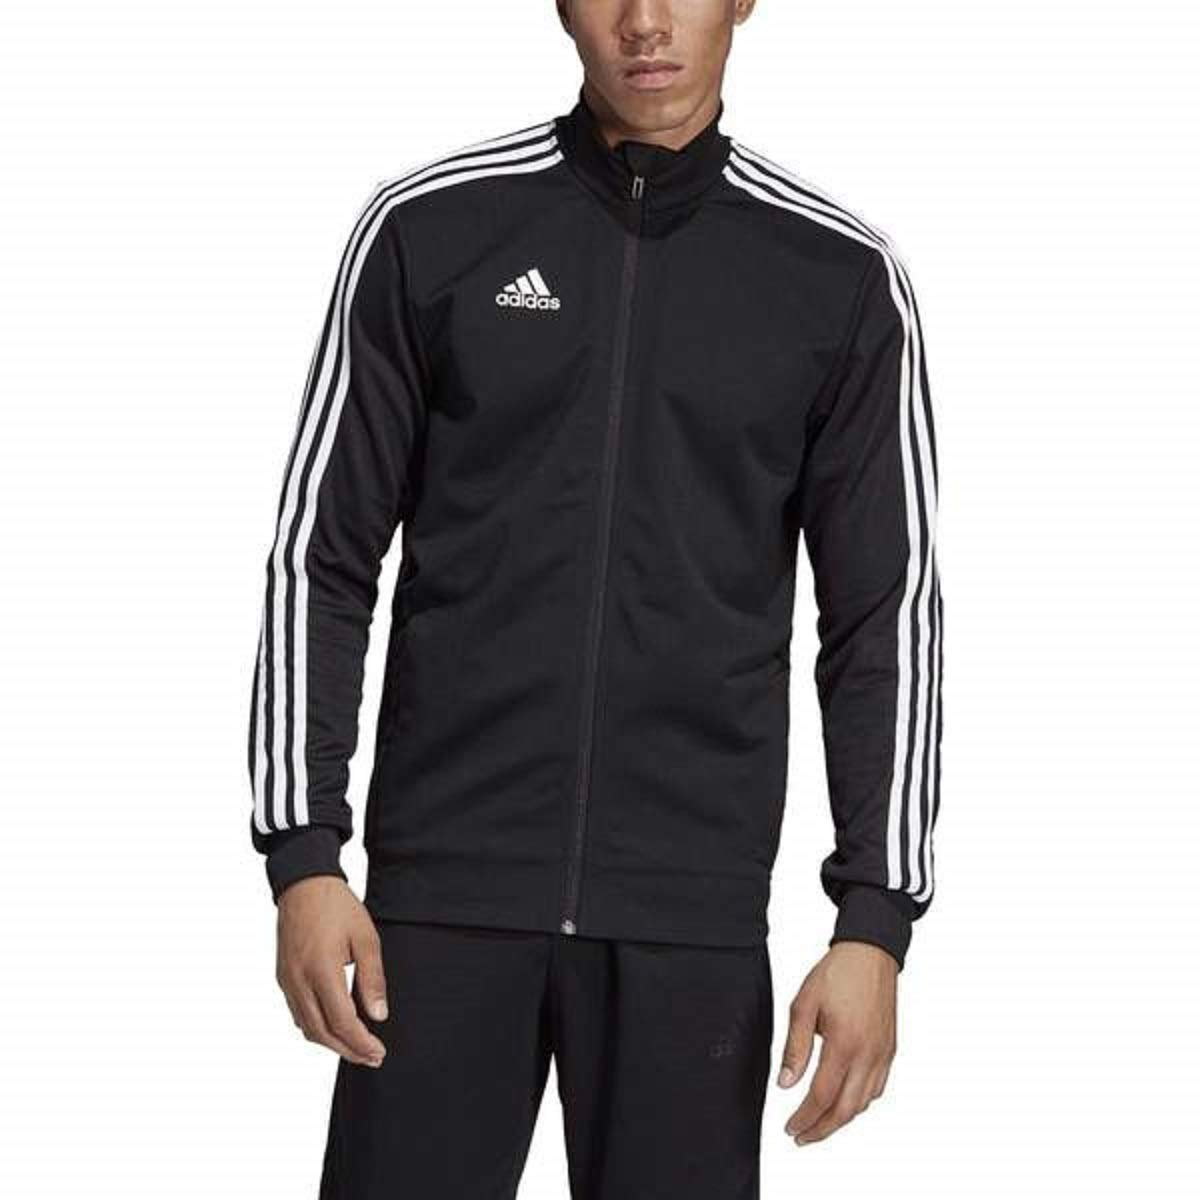 adidas Men's Tiro 19 Track Suit (2XL Jacket/XL Pant, Black/White) by adidas